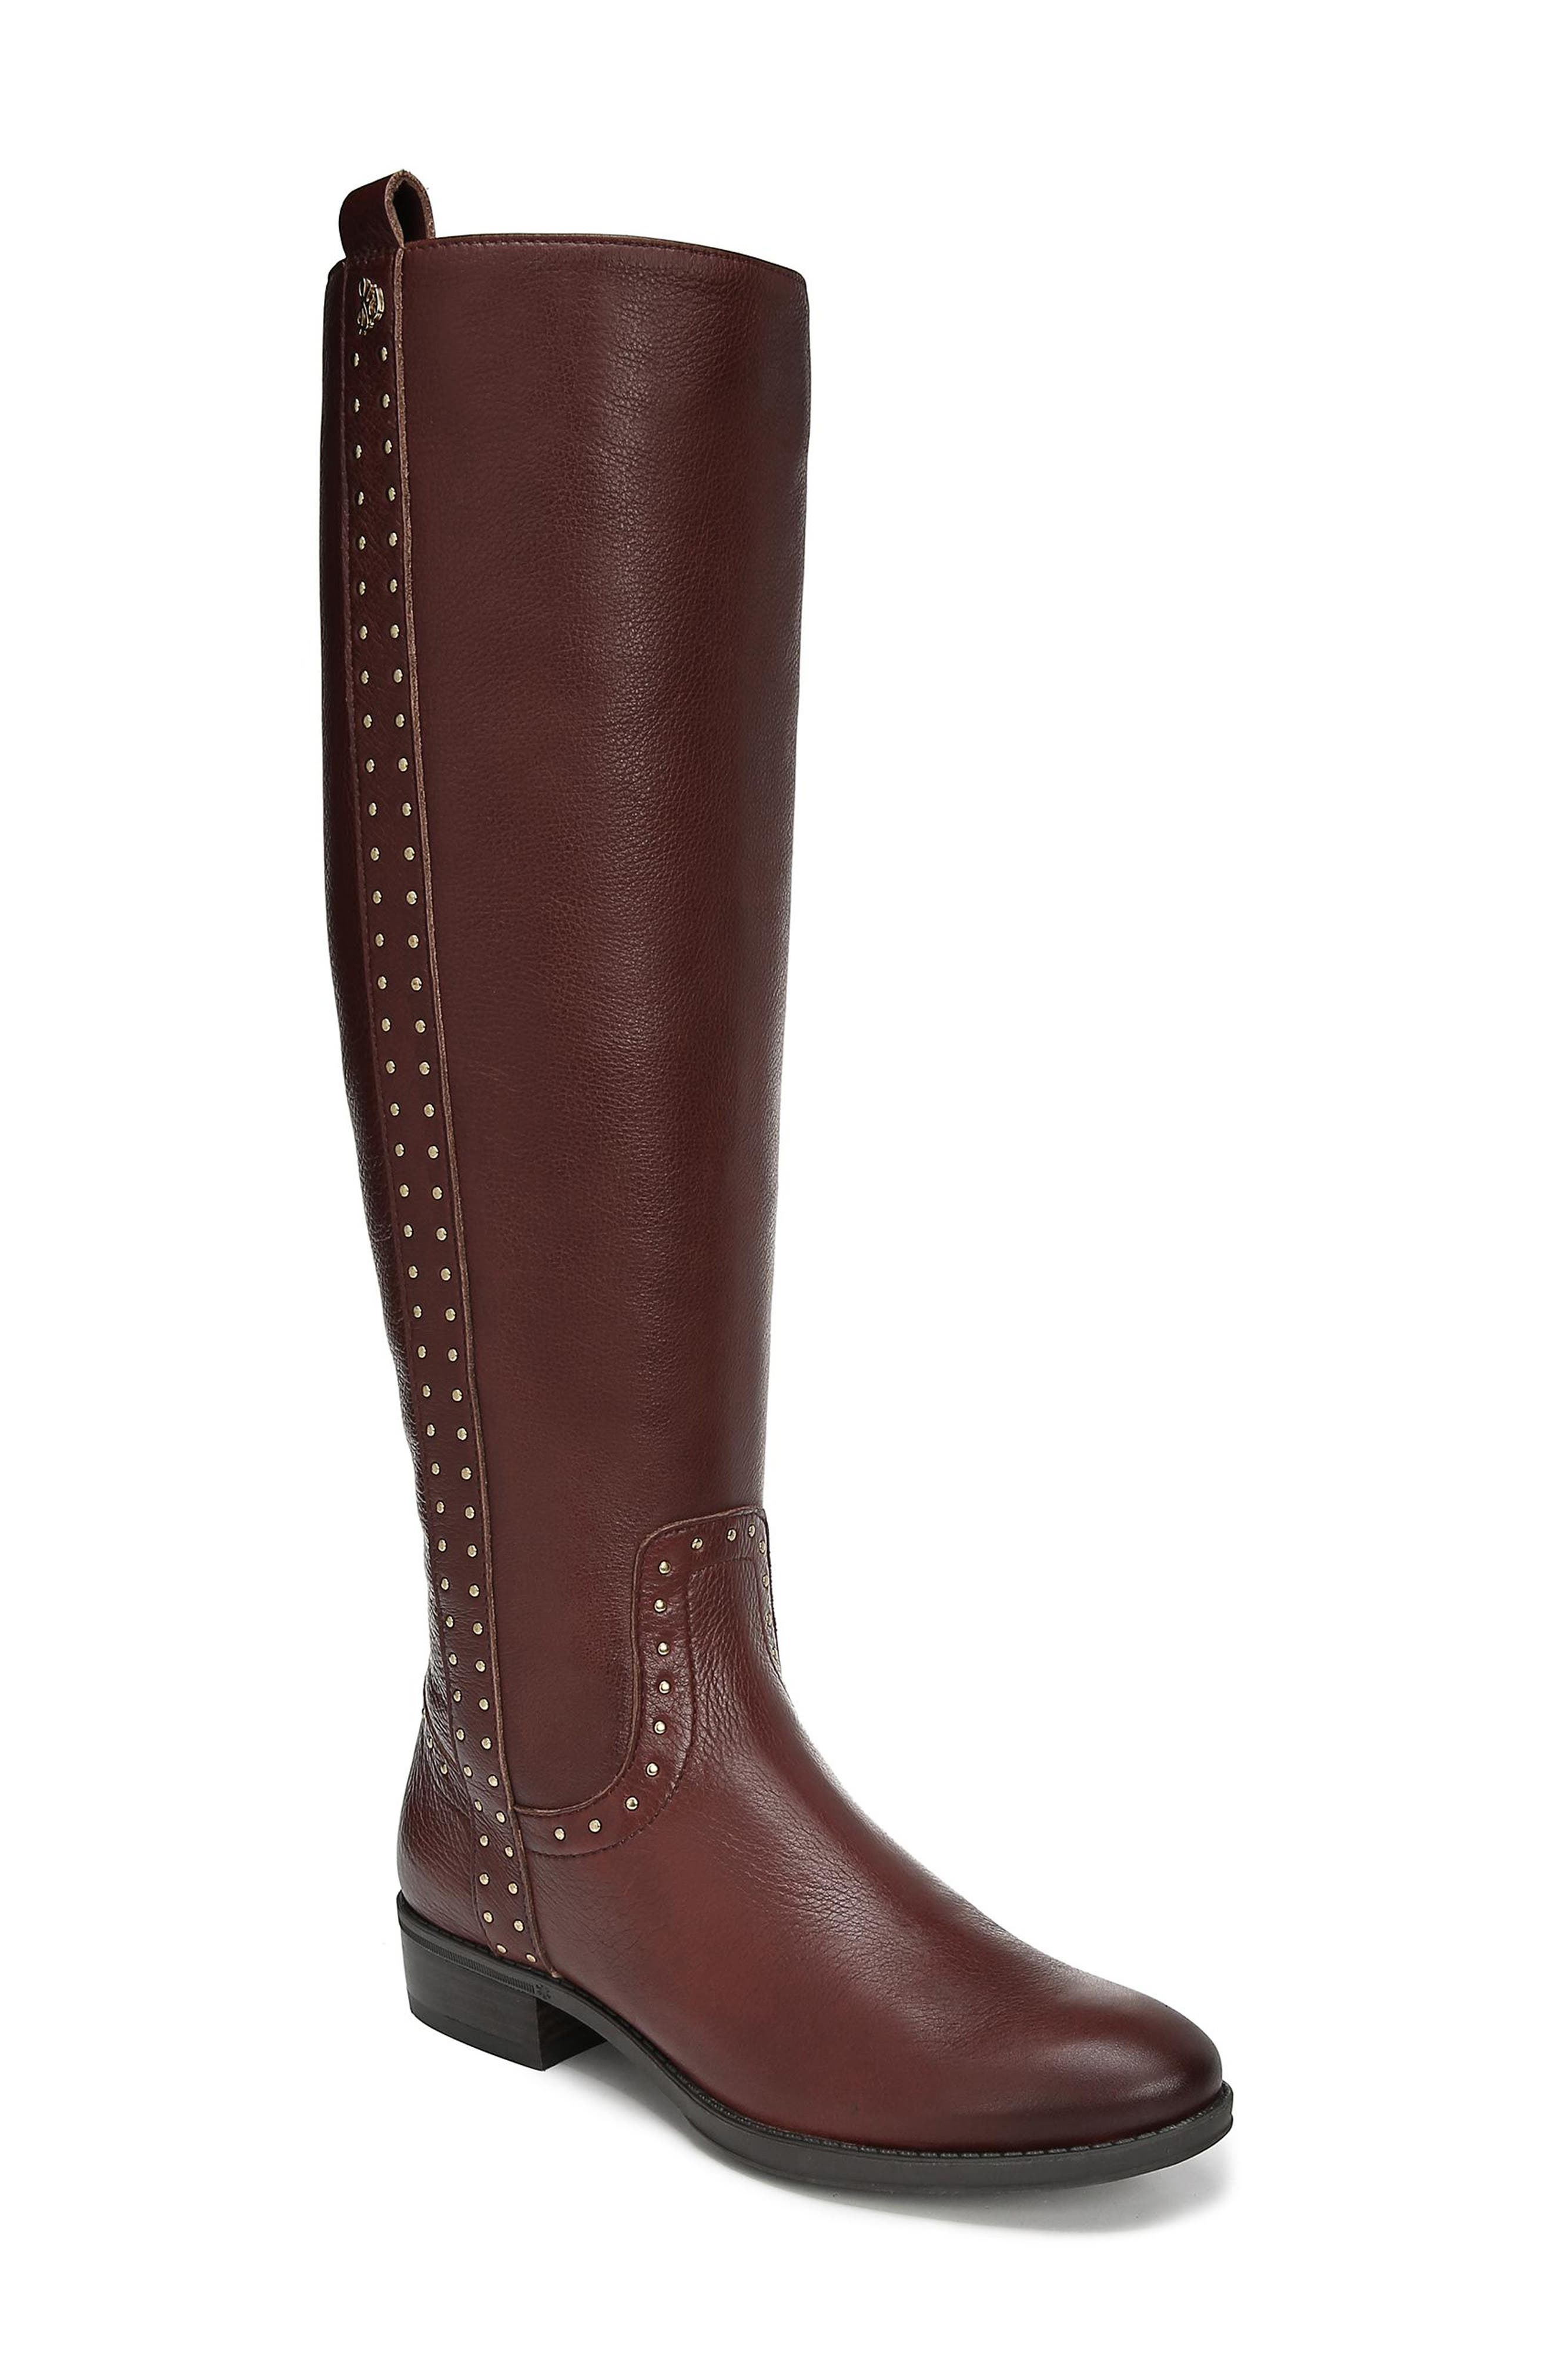 Sam Edelman Prina Riding Boot, Brown